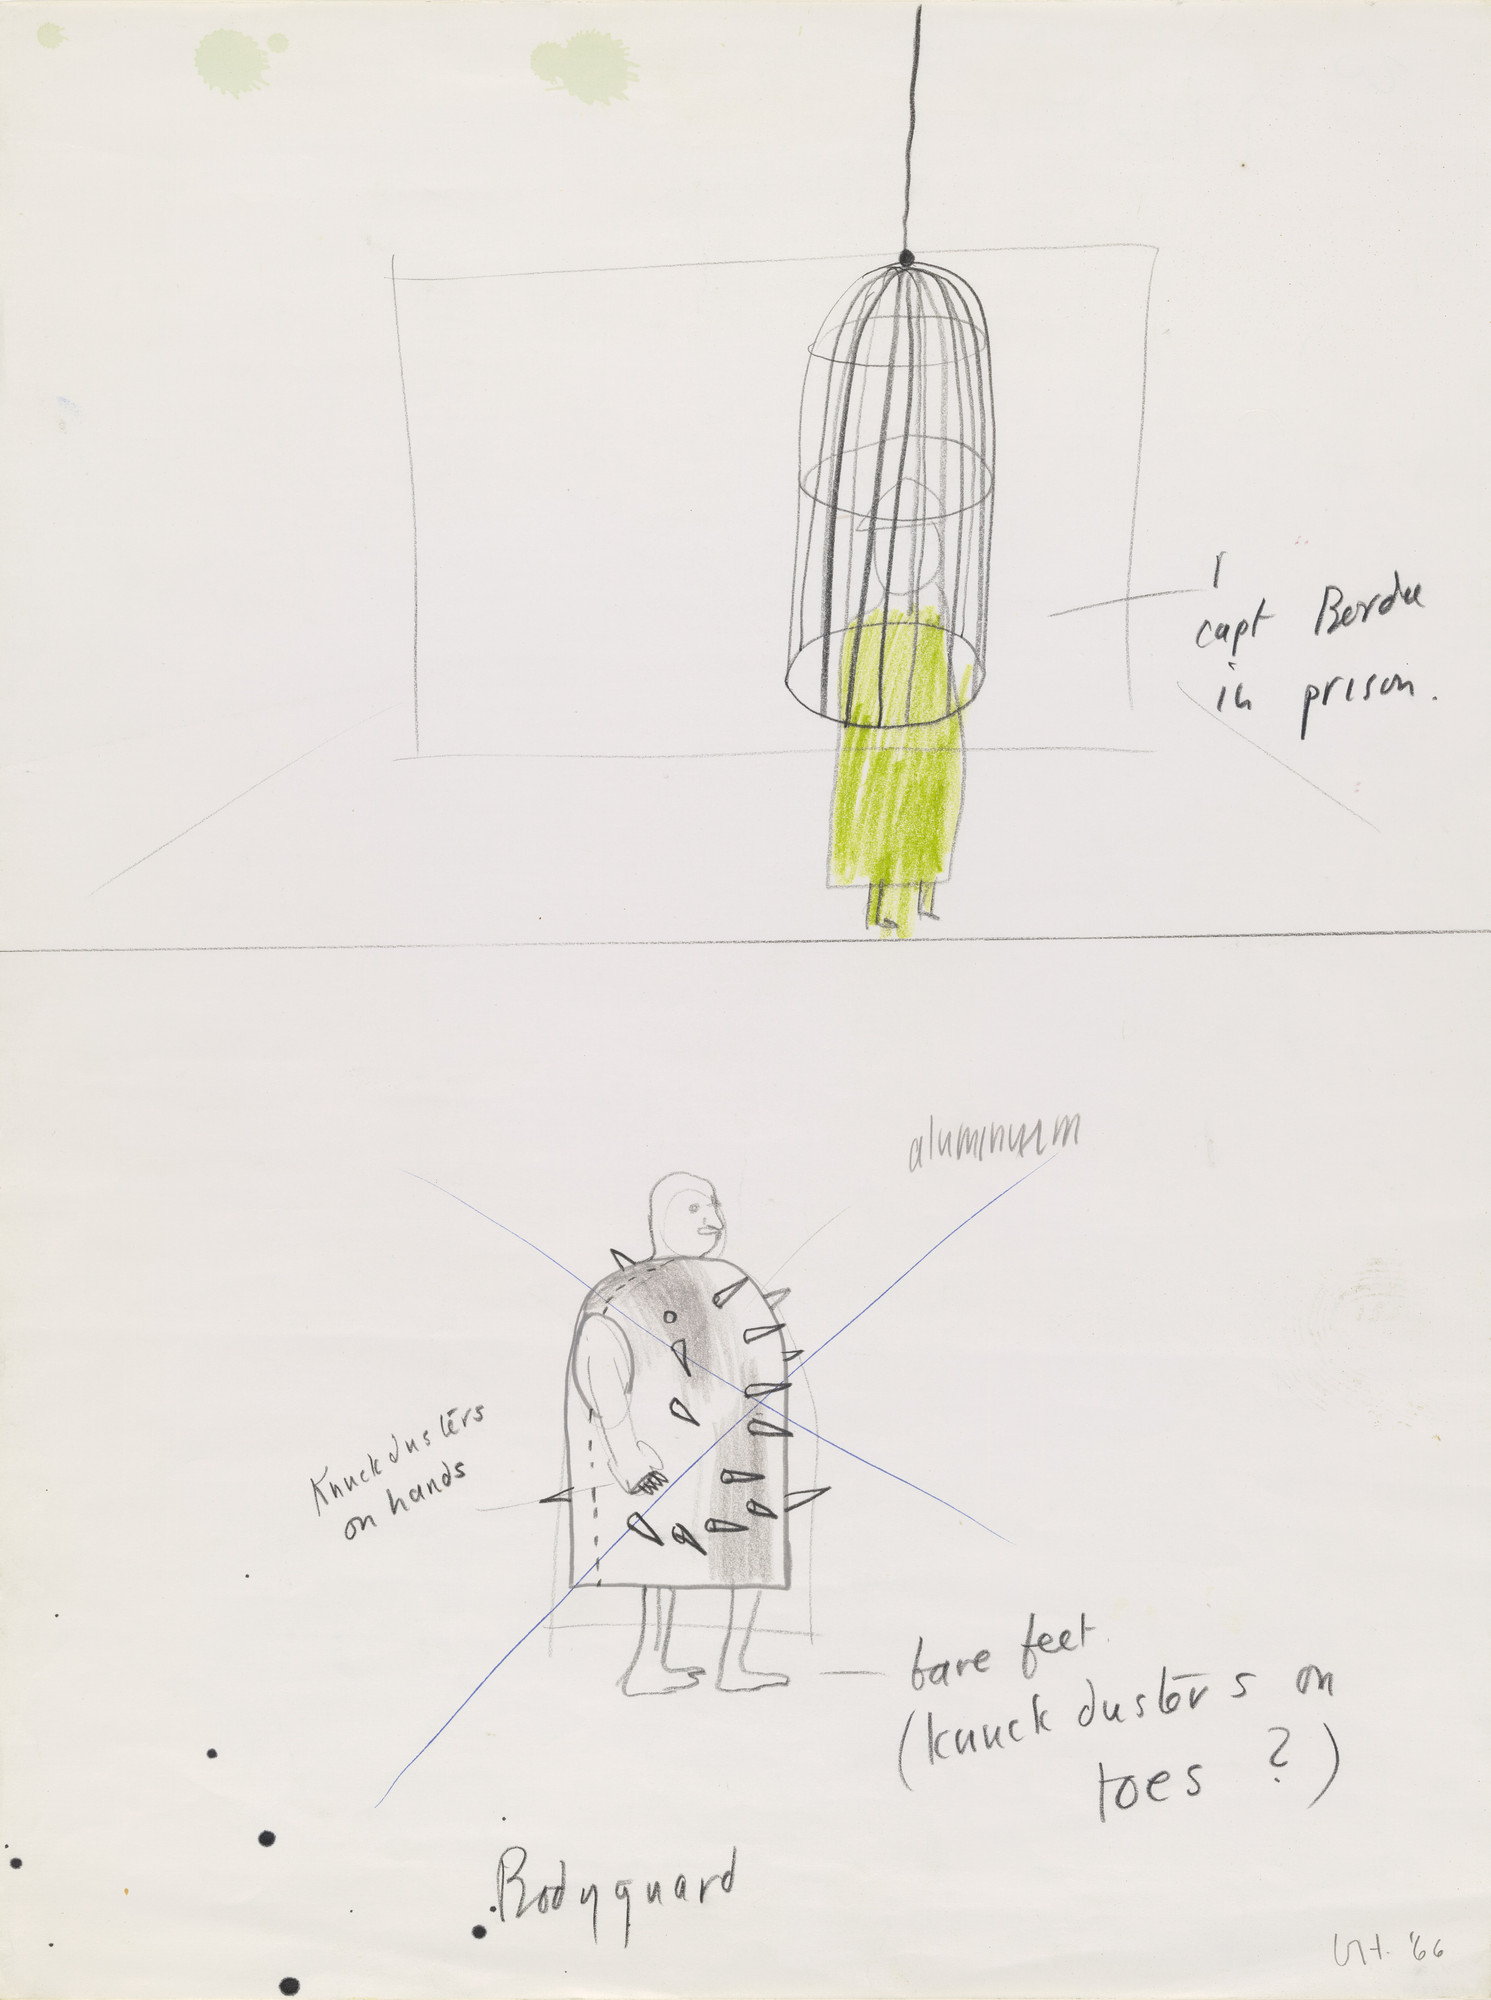 David Hockney. Captain Bordure in prison and Bodyguard (crossed out). Costume designs for the play Ubu Roi. 1966